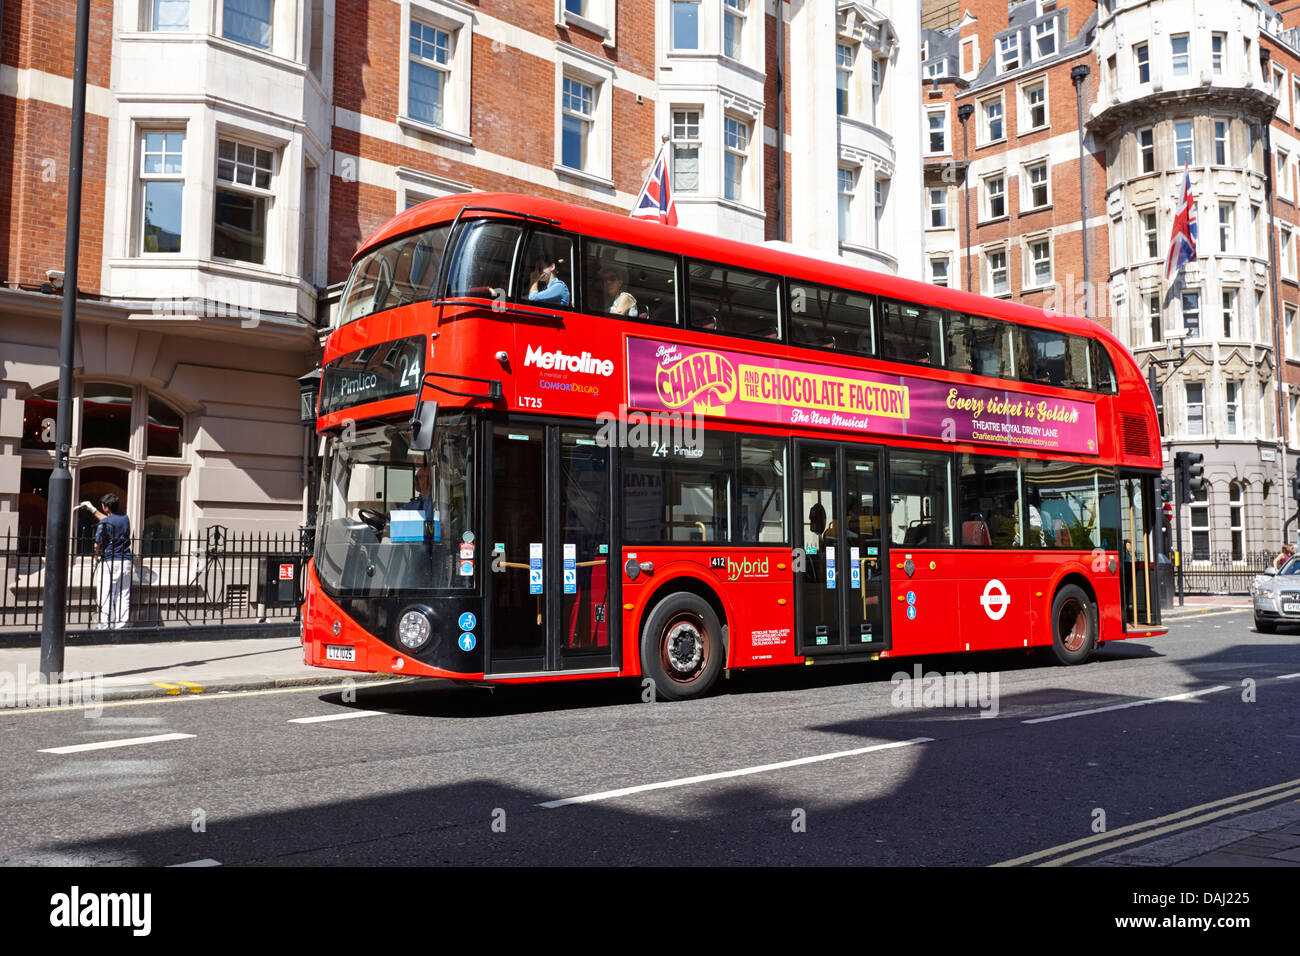 new london routemaster bus in central london, england uk - Stock Image